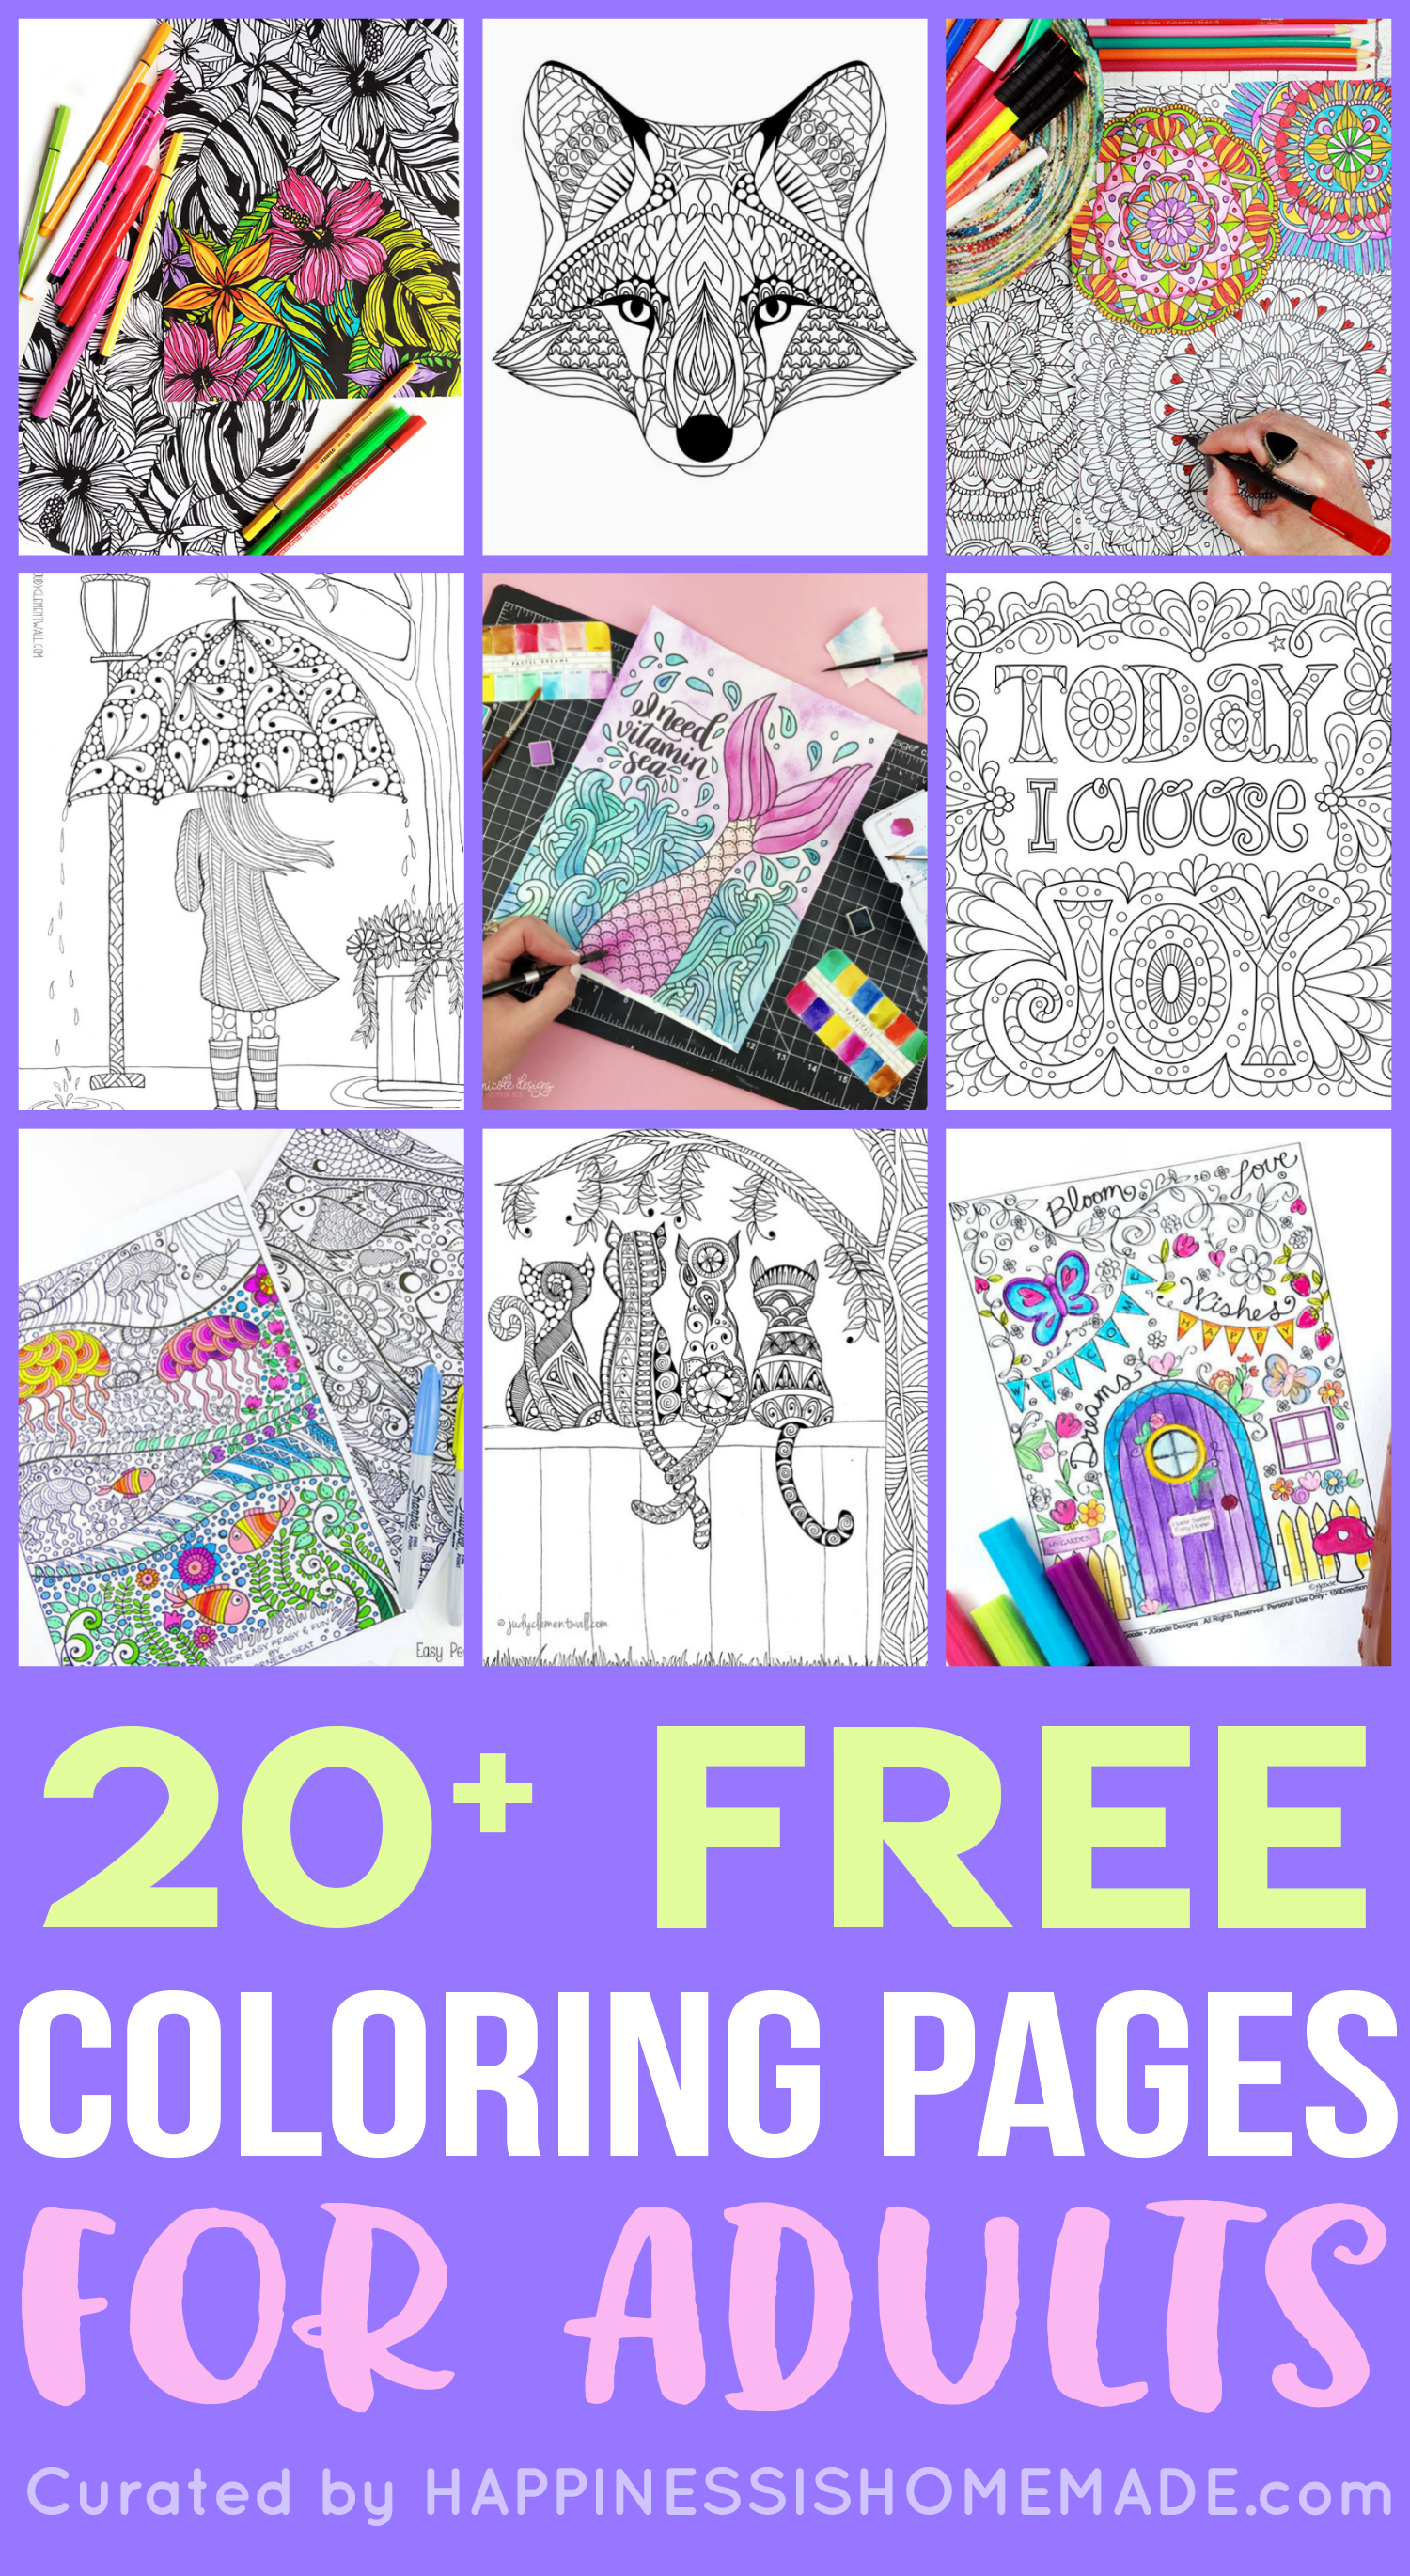 420 Top Coloring Book Pages For Adults Free Download Free Images